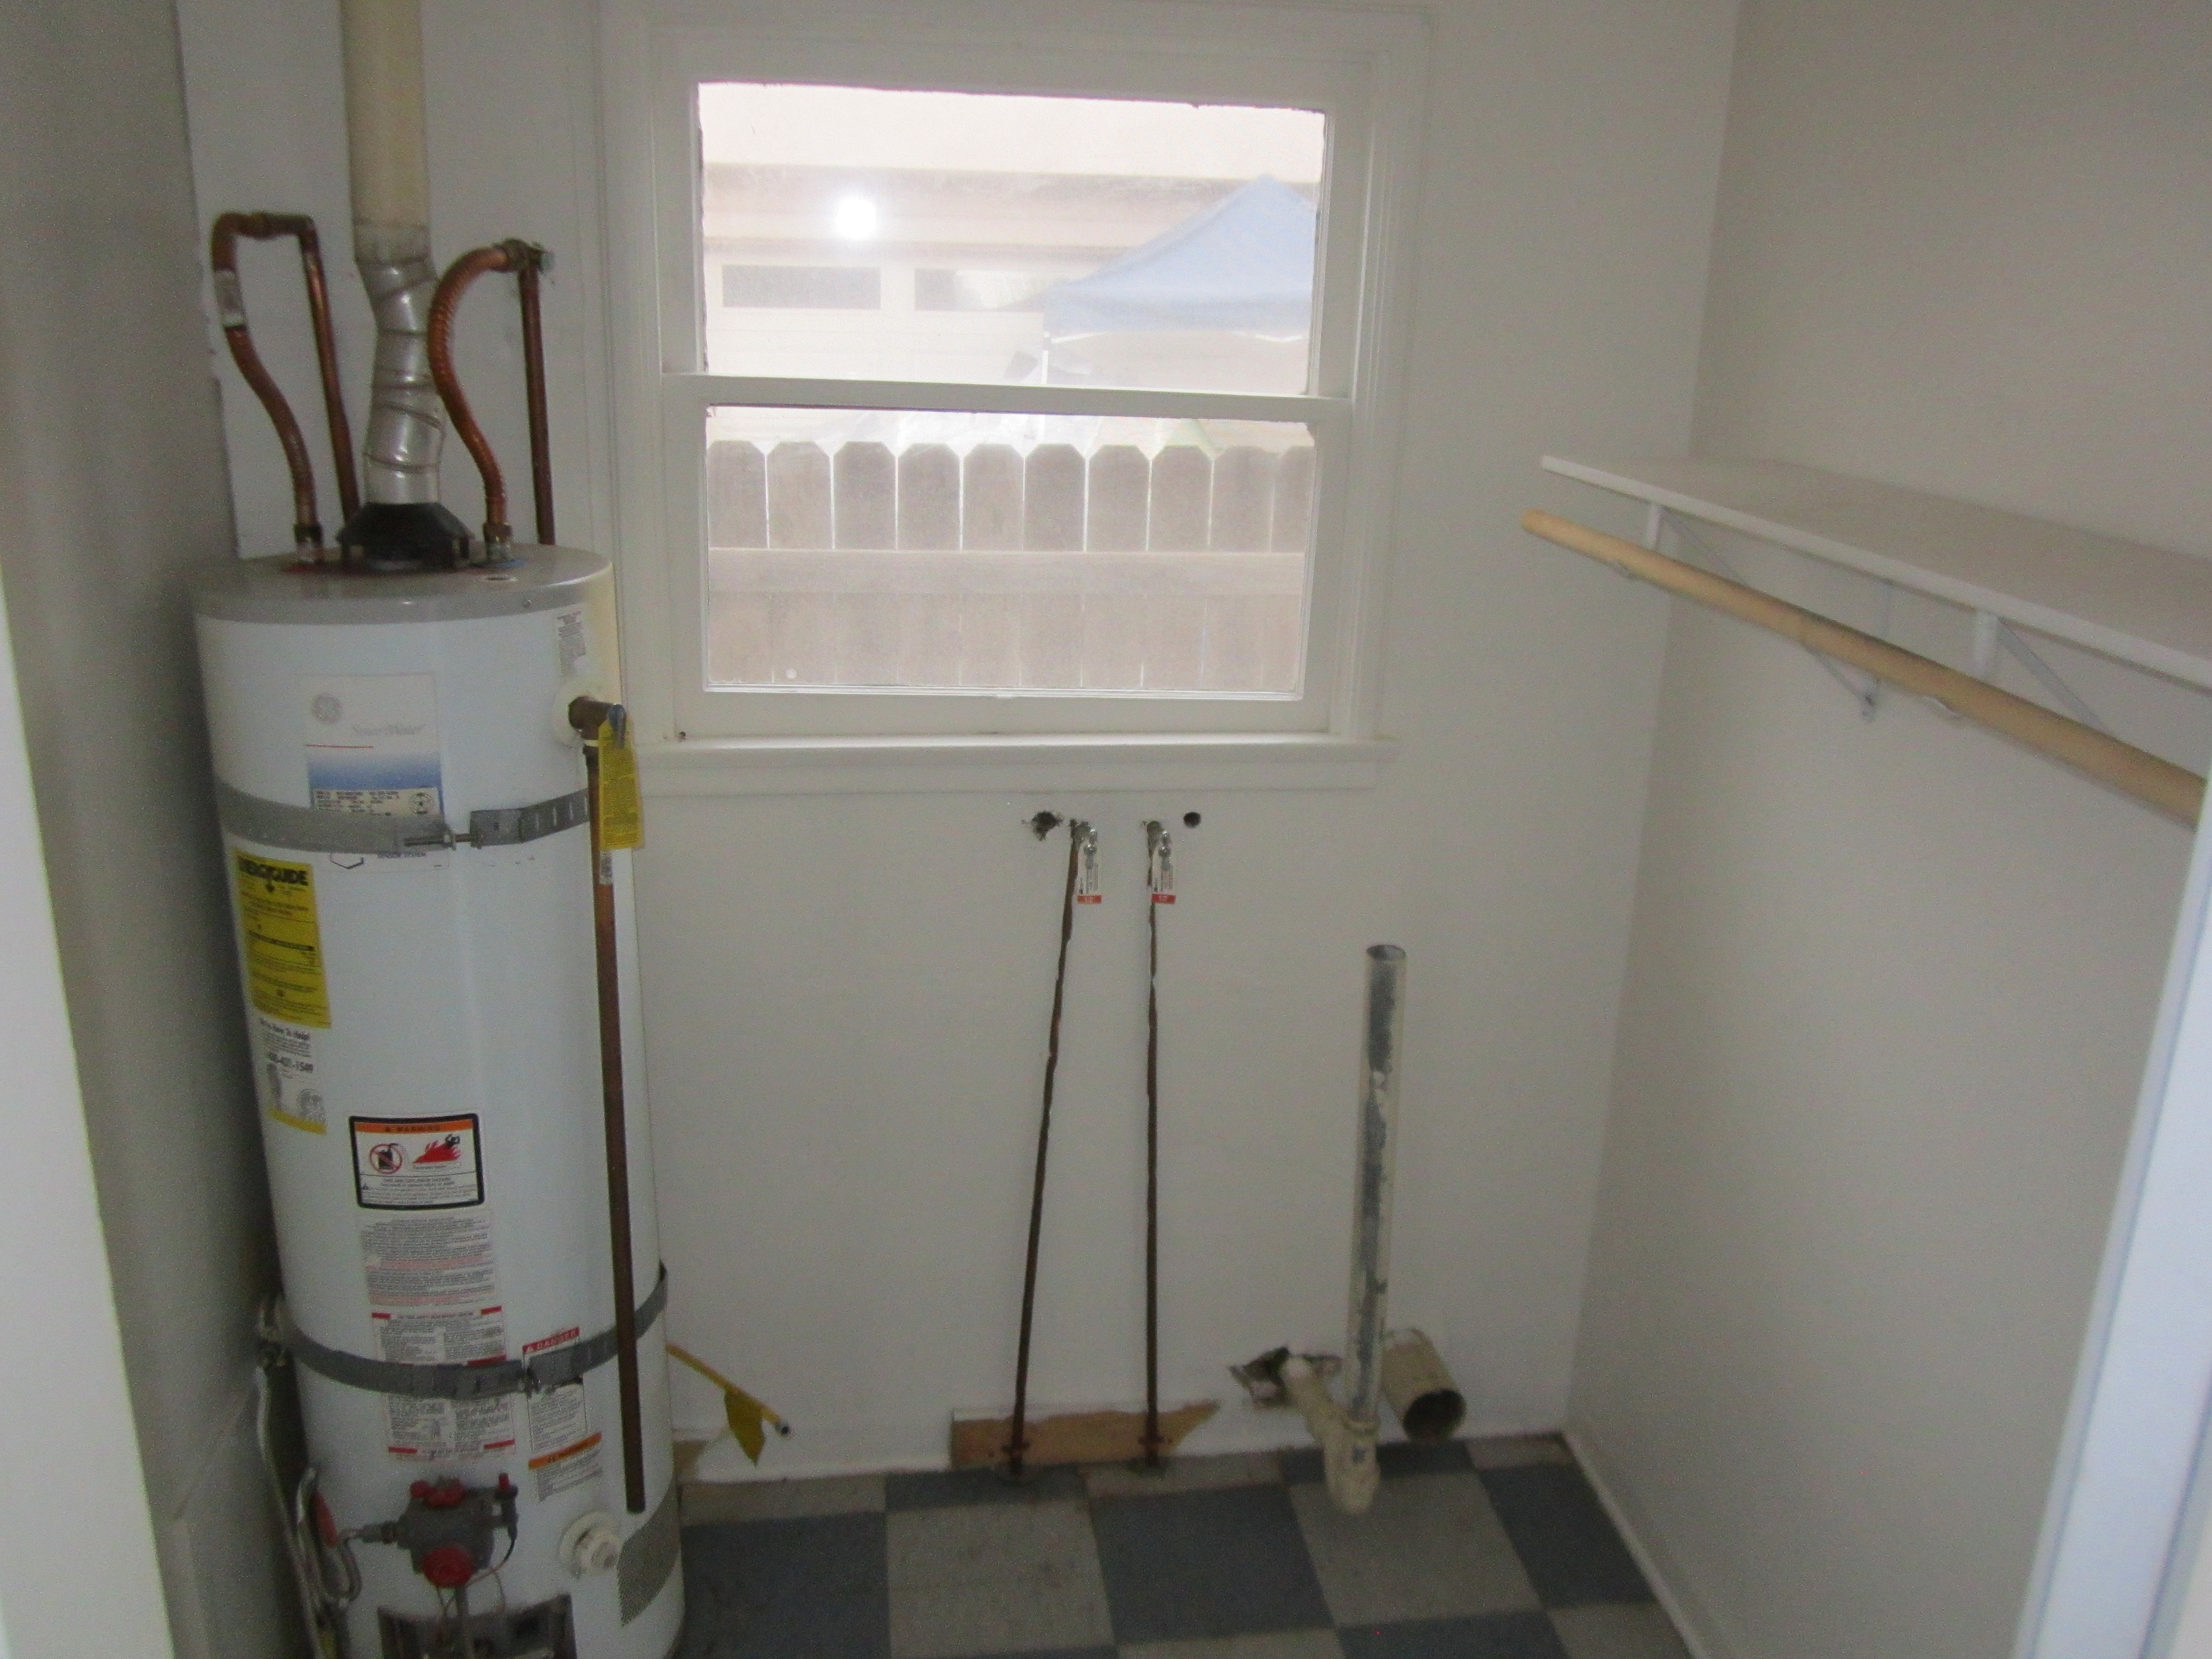 805 Property Management, Justin Cochrane | laundry room